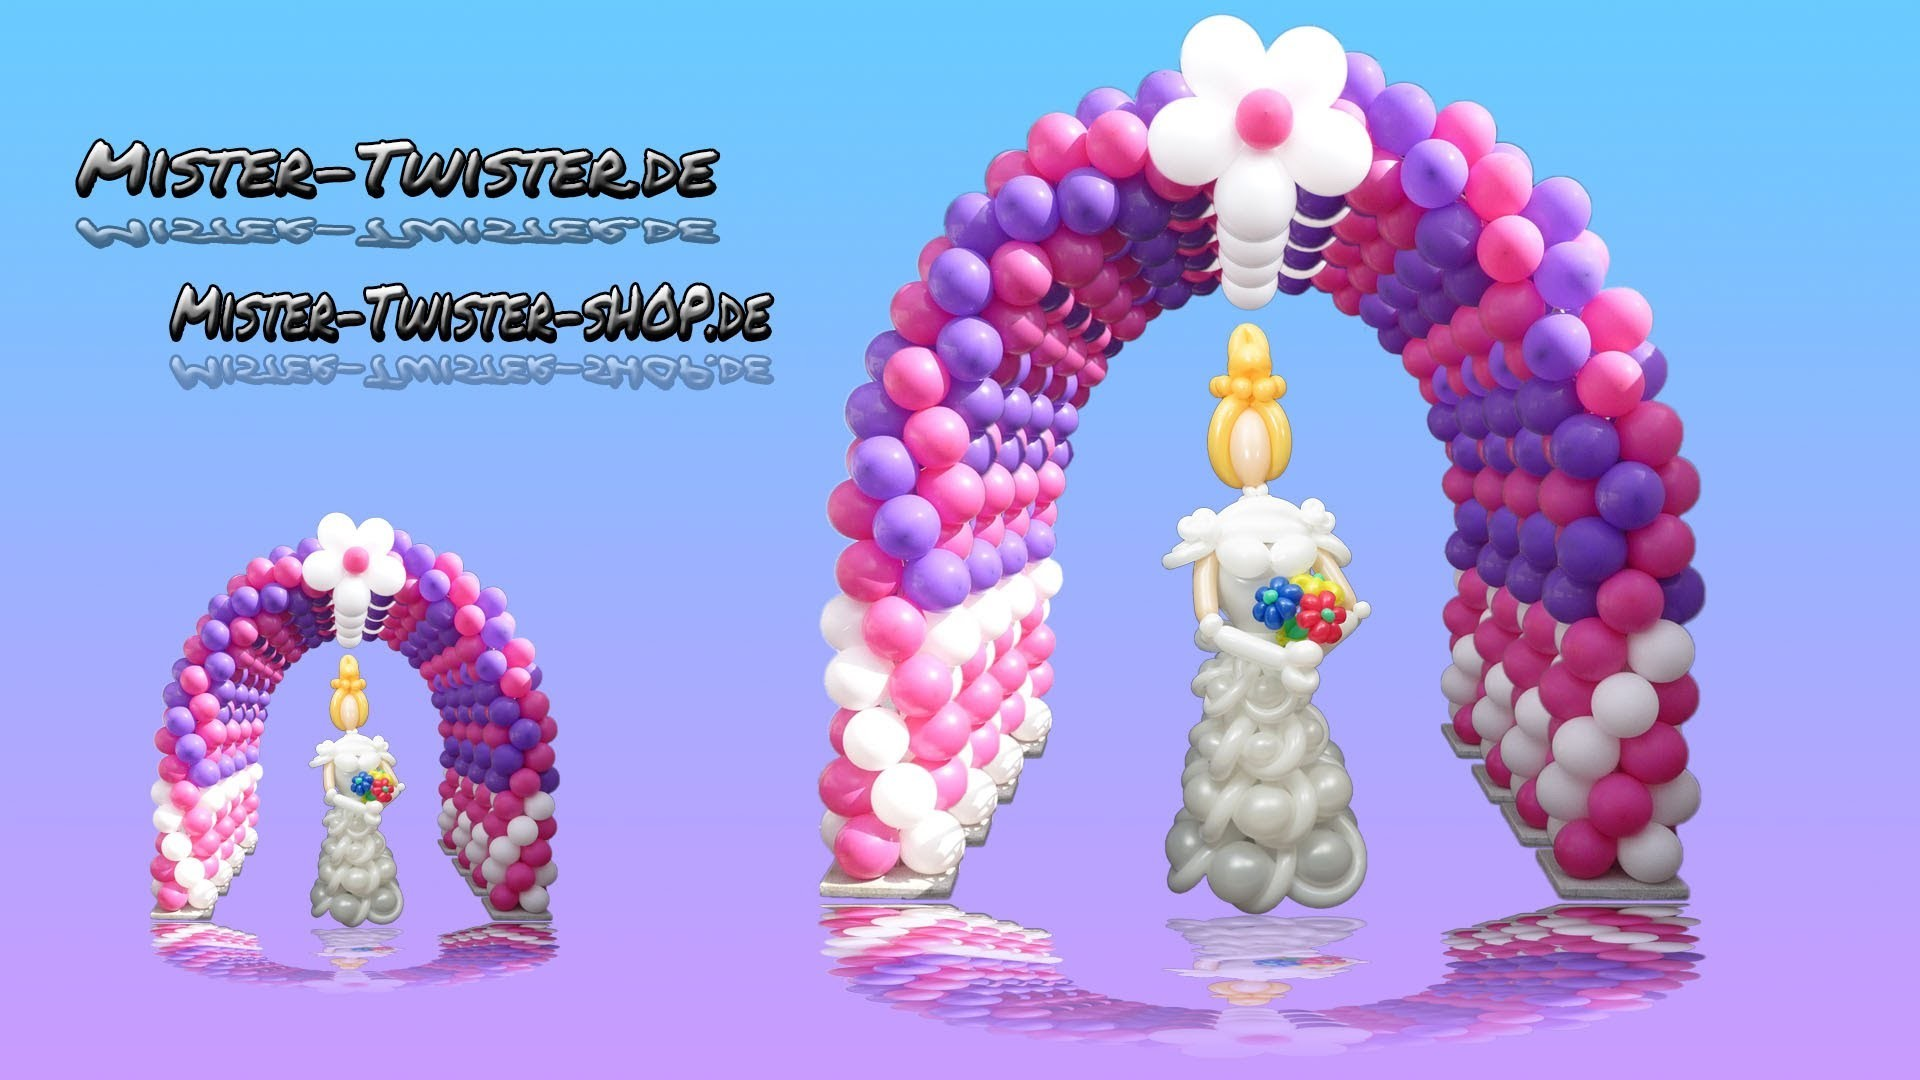 Balloon arch  decoration, Ballon Bogen Dekoration, Modellierballon Ballonfiguren